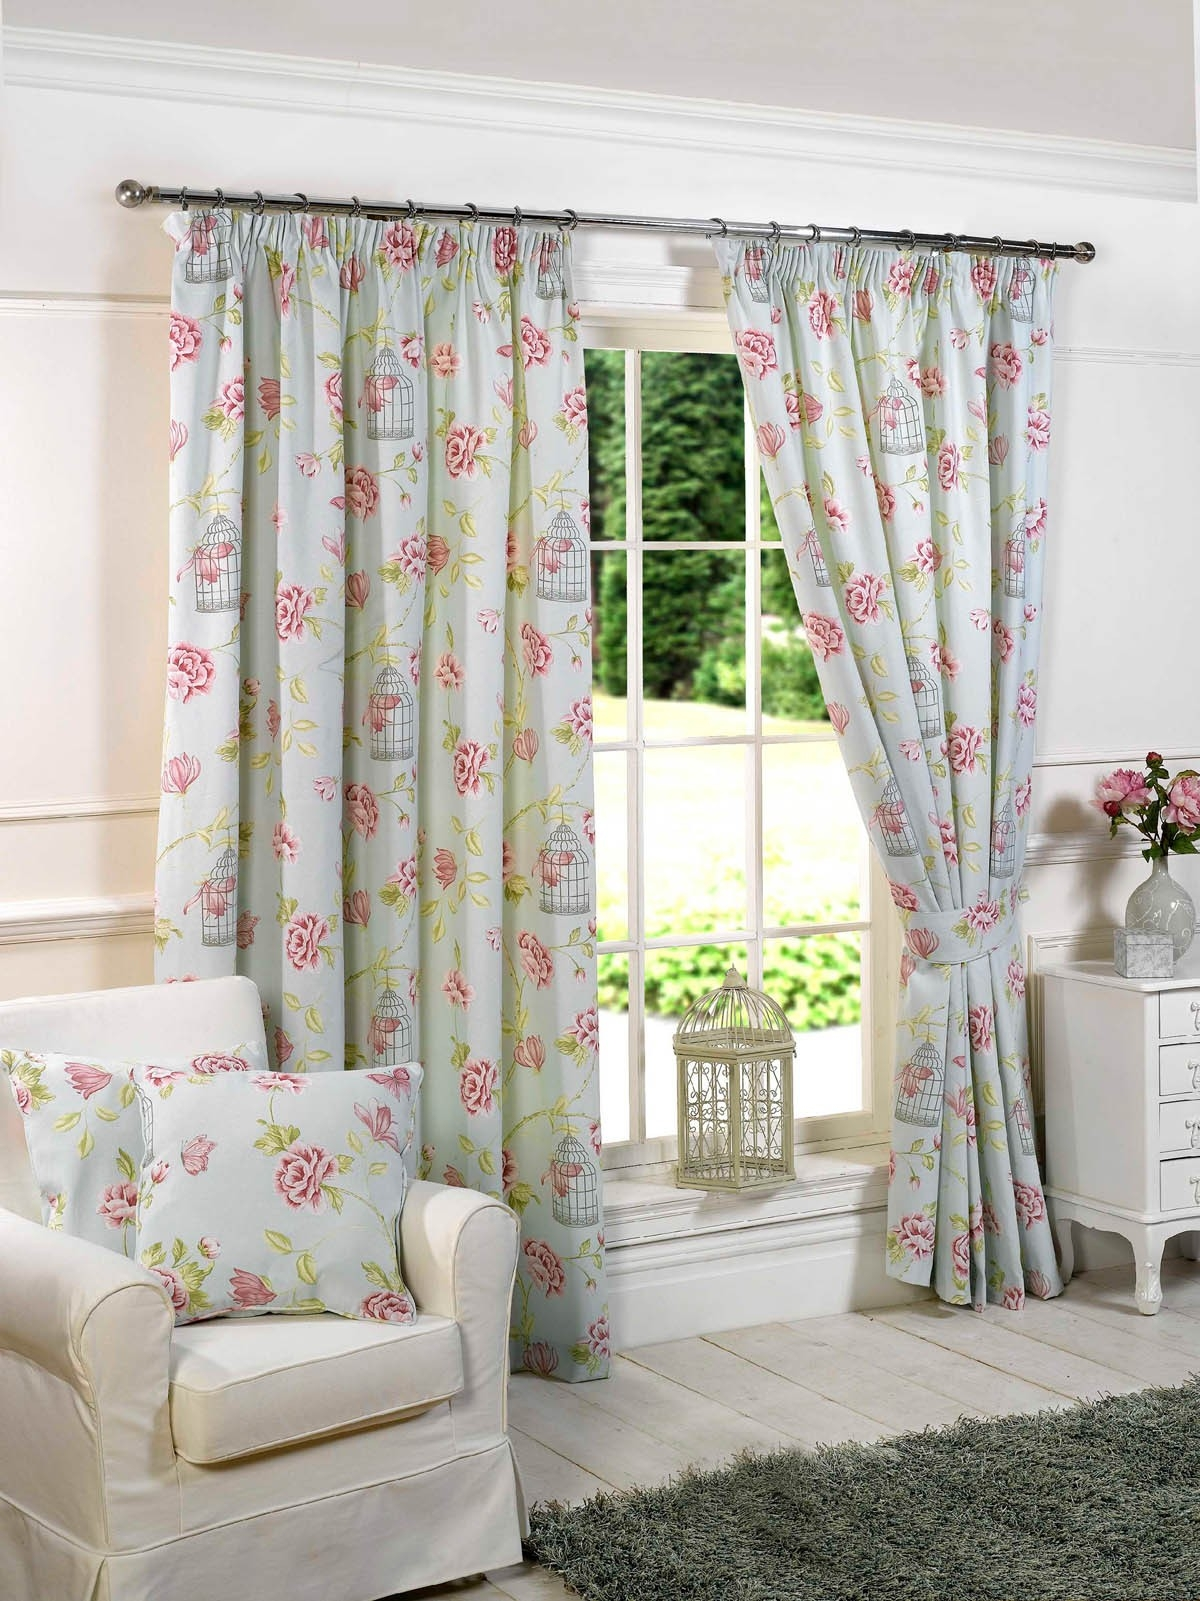 15 best ideas ready made curtains for large bay windows. Black Bedroom Furniture Sets. Home Design Ideas